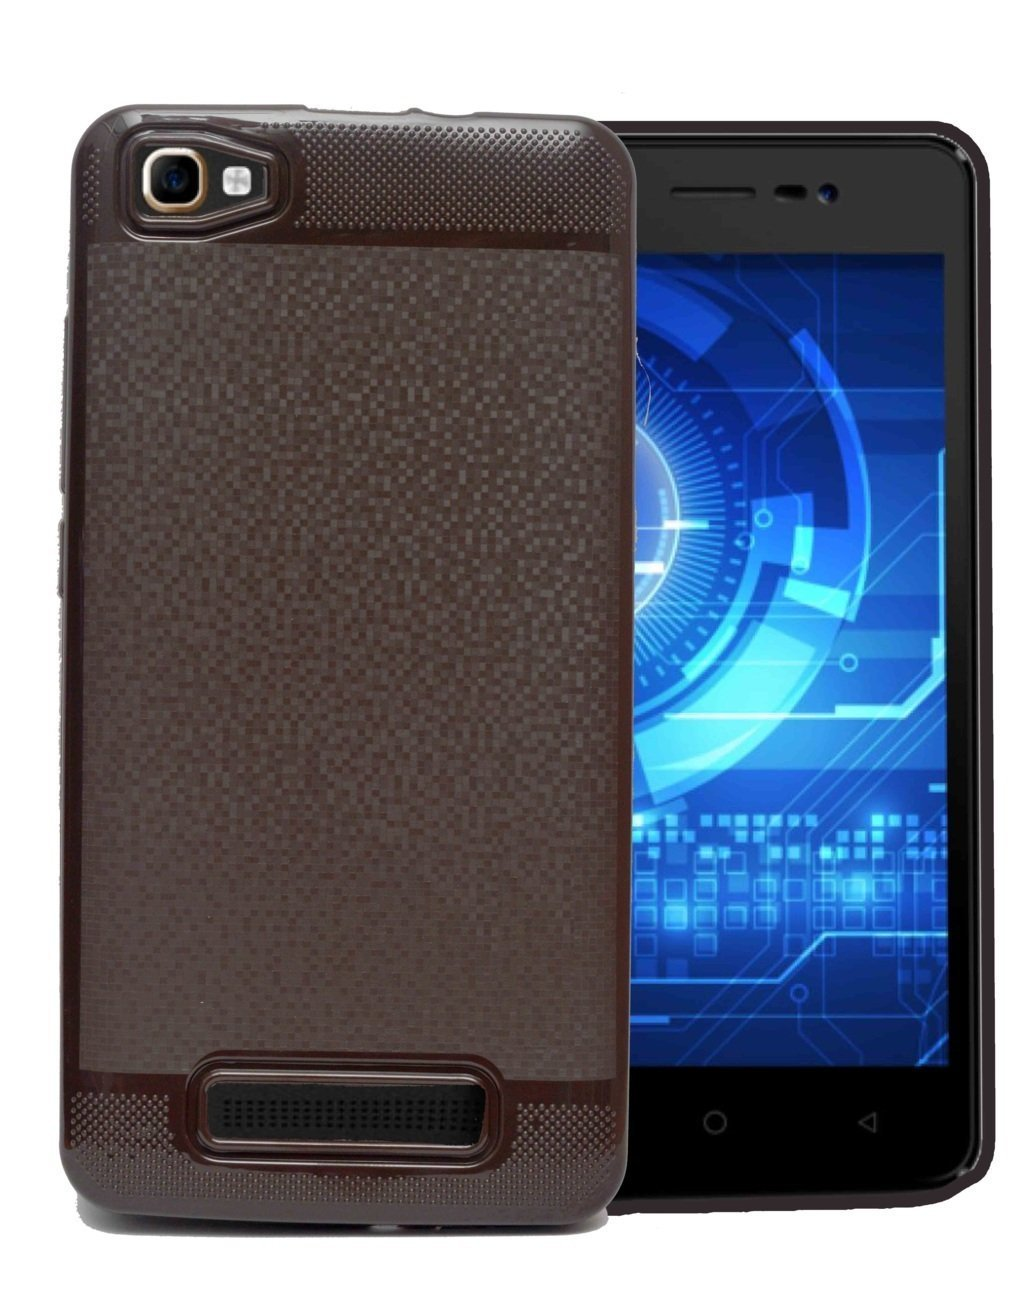 Gionee S10 Soft Back Case Cover with Camera Protection - Brown